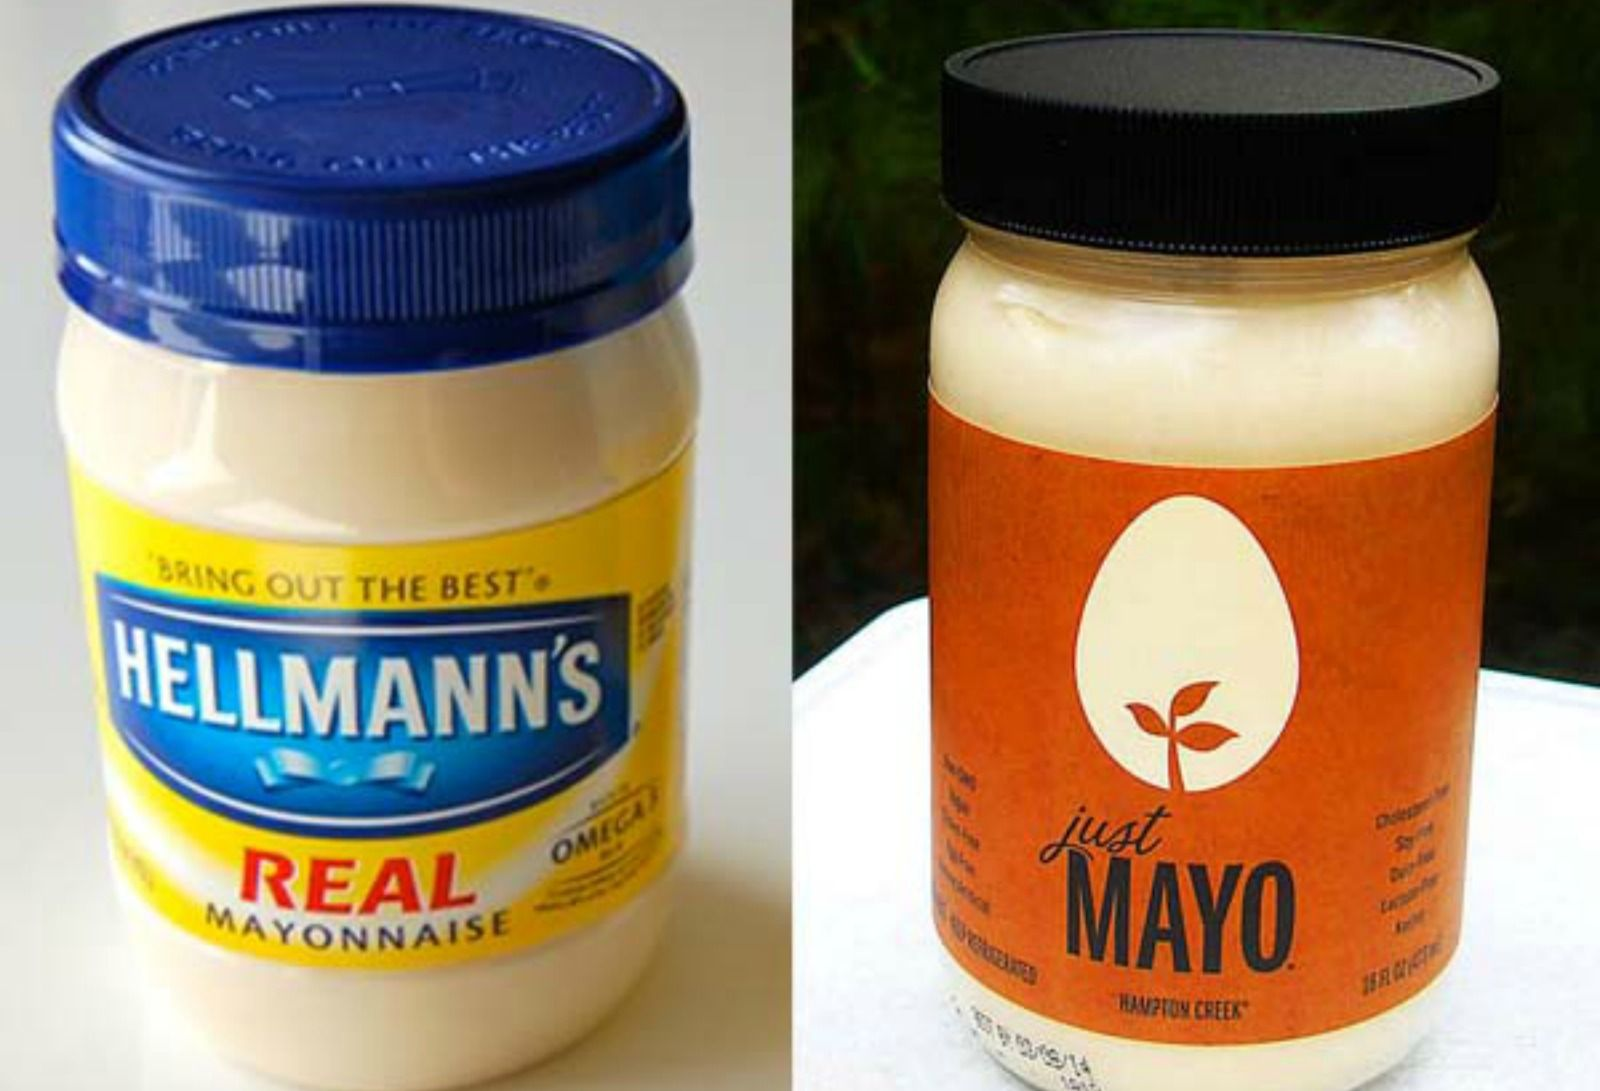 Wth Food Giant Sues Vegan Mayo Company Because Their Mayo Contains No Eggs With Images Vegan Mayo Mayo Brands Vegan